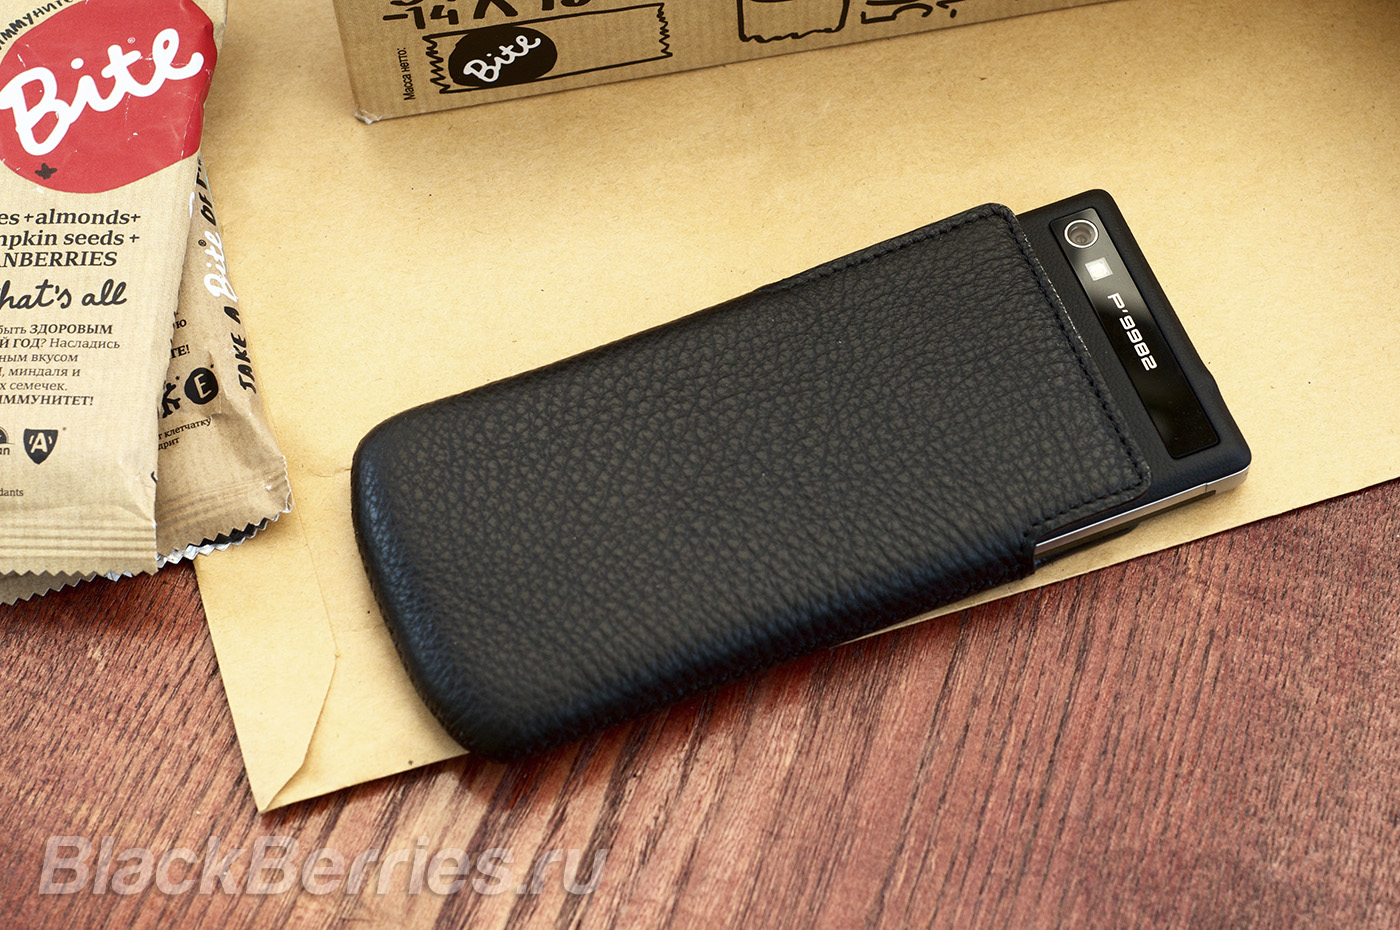 BlackBerry-P9982-Case-12